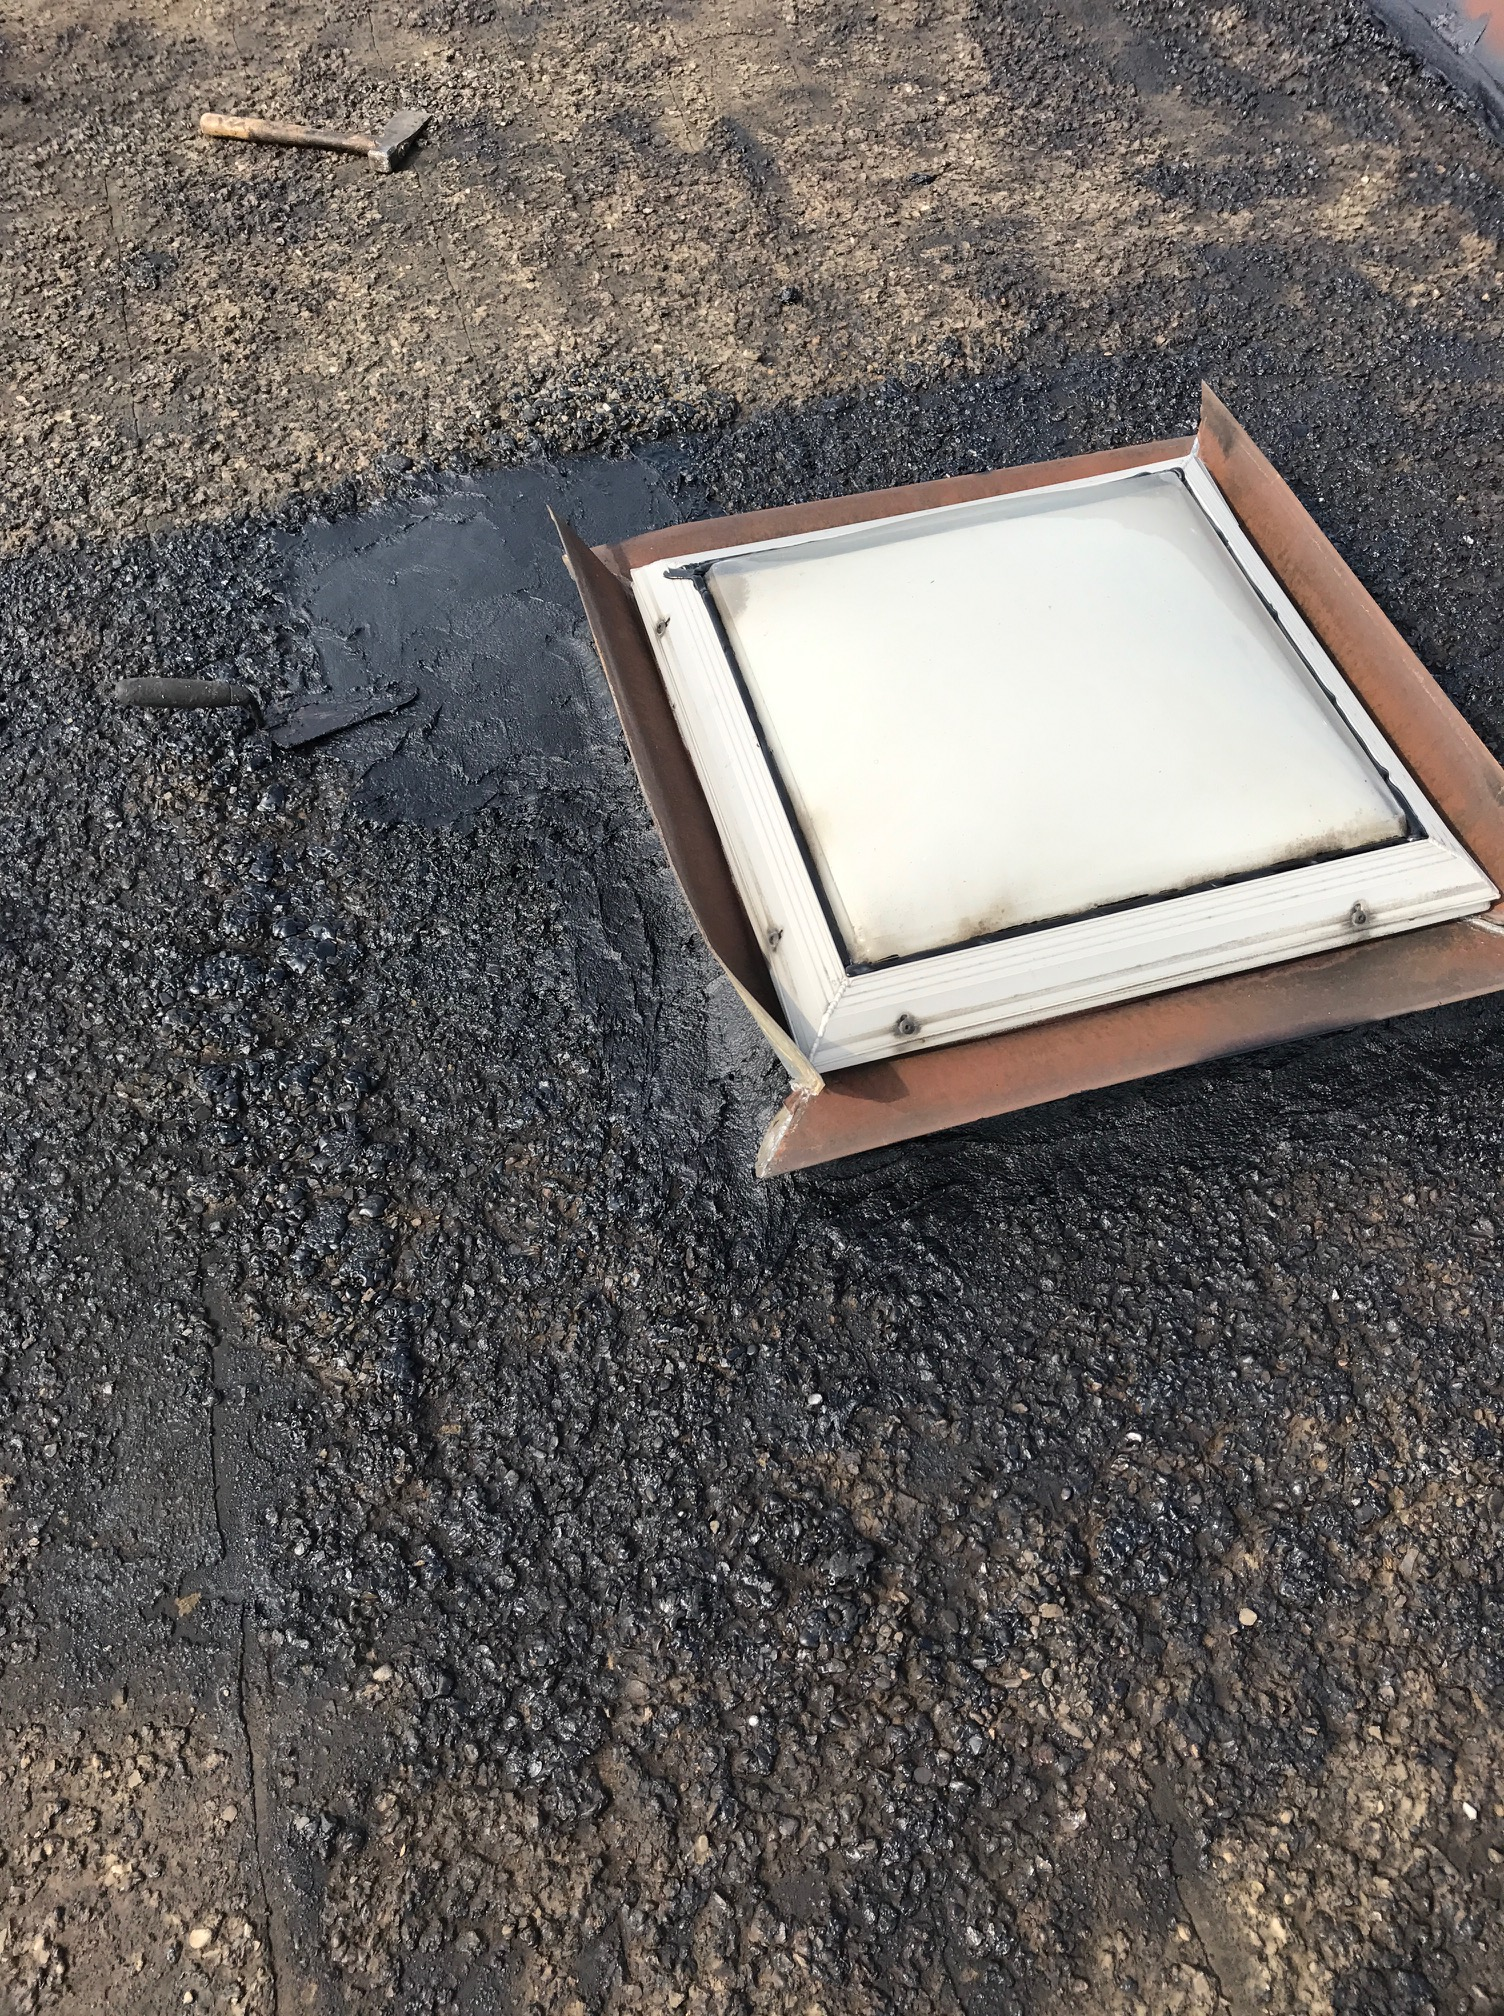 Skylight repair flat roof Toronto